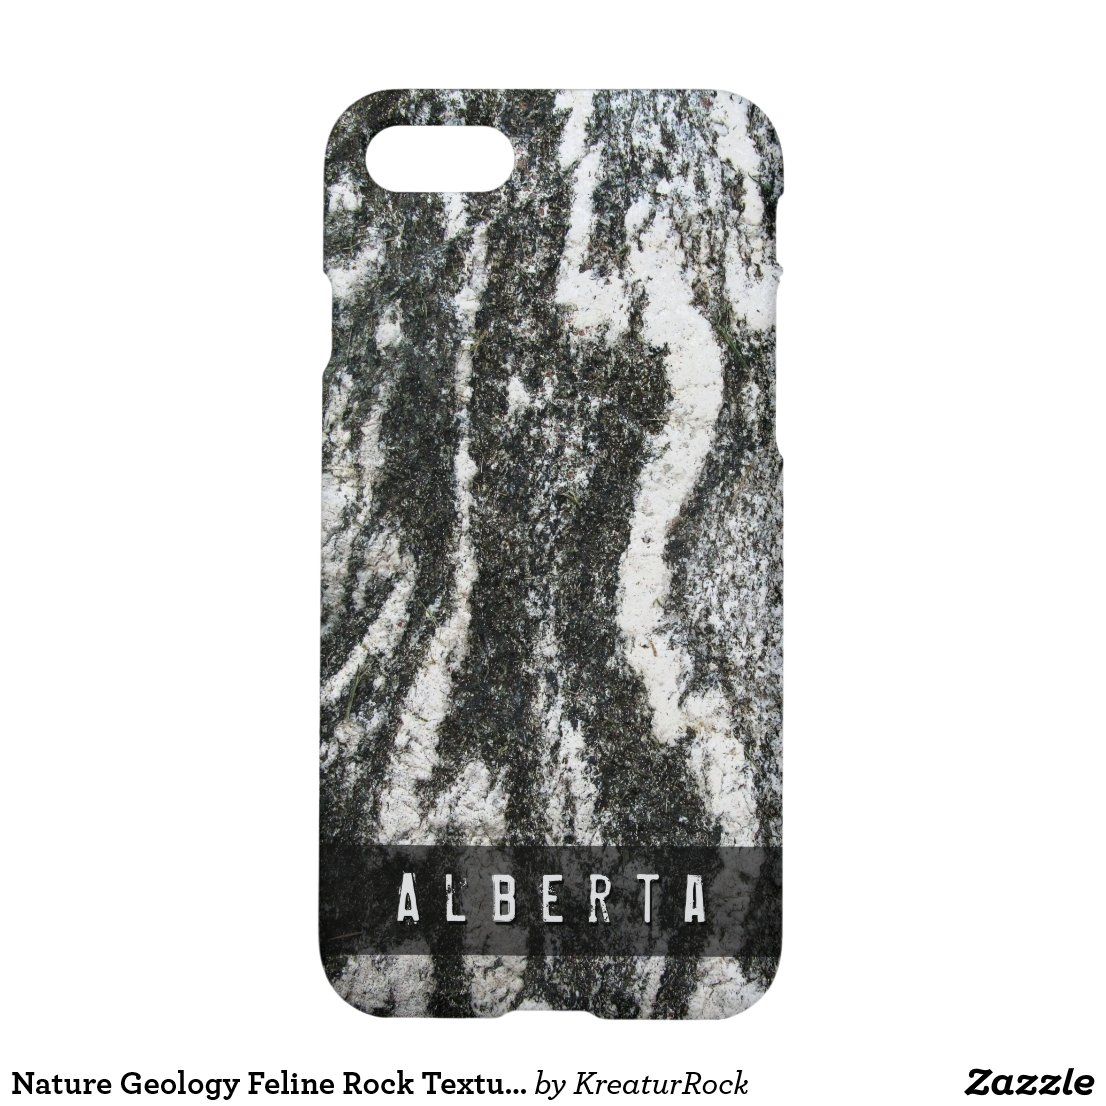 Nature Geology Feline Rock Texture Custom Name